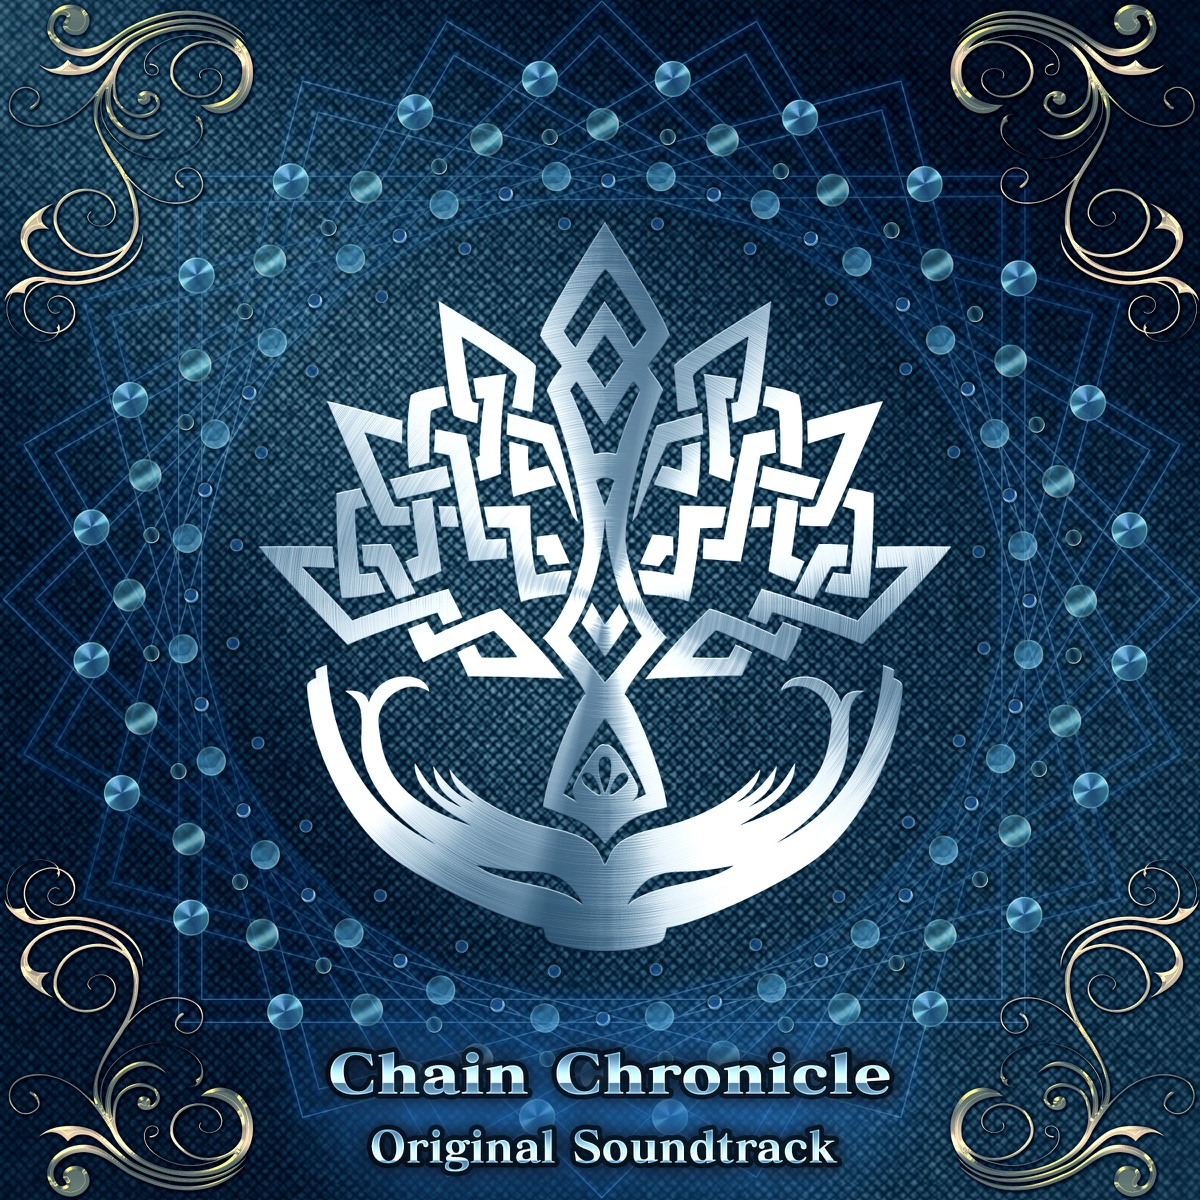 Chain Chronicle Album Cover By Sega